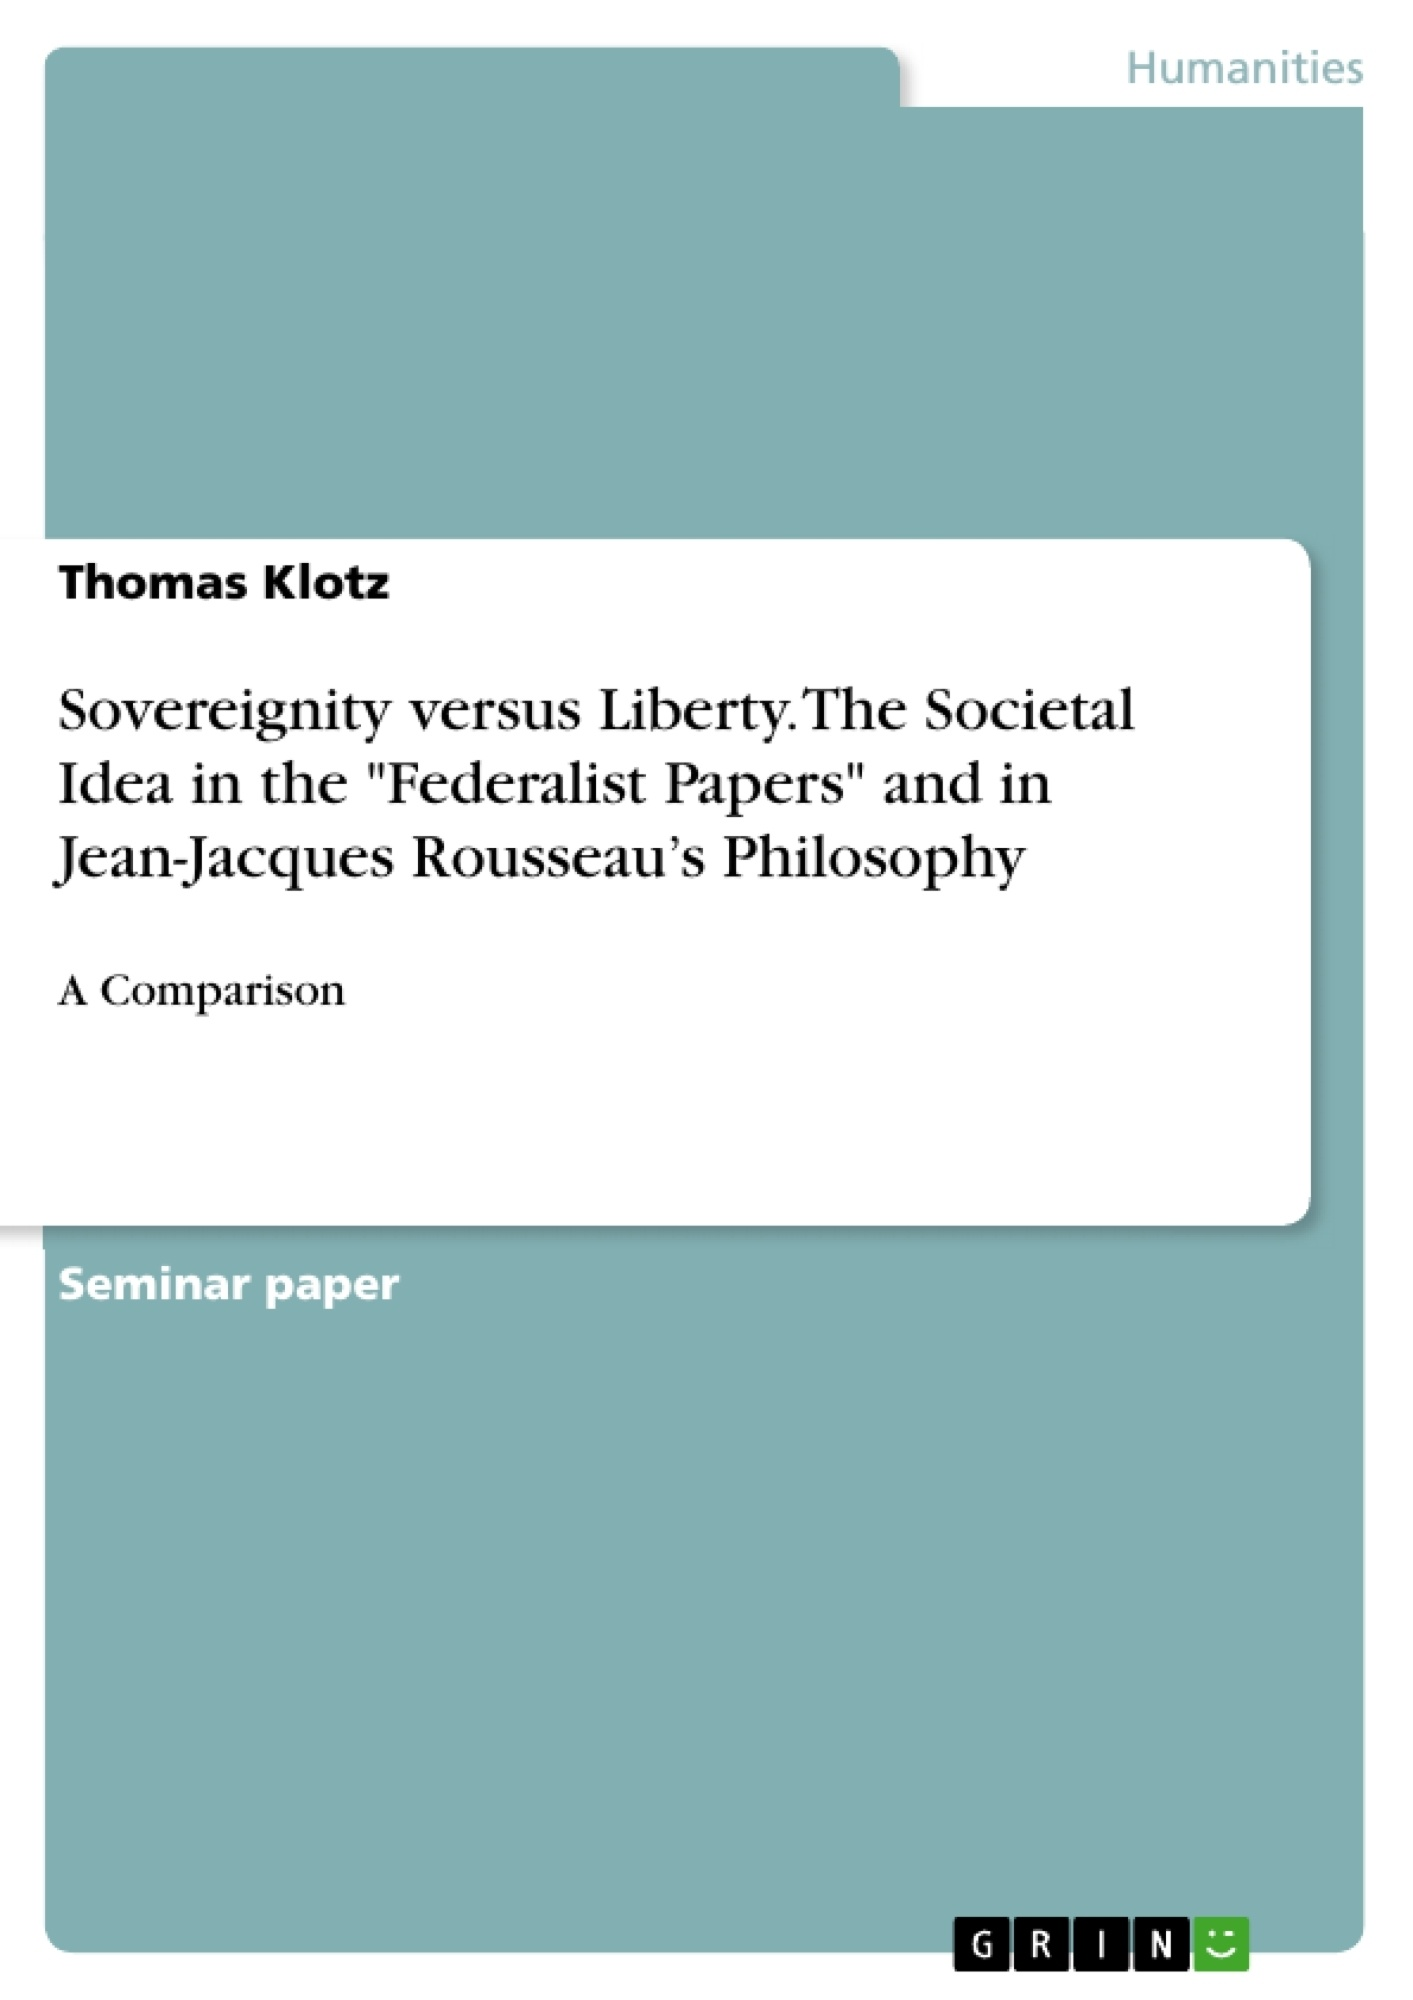 """Title: Sovereignity versus Liberty. The Societal Idea in the """"Federalist Papers"""" and in Jean-Jacques Rousseau's Philosophy"""